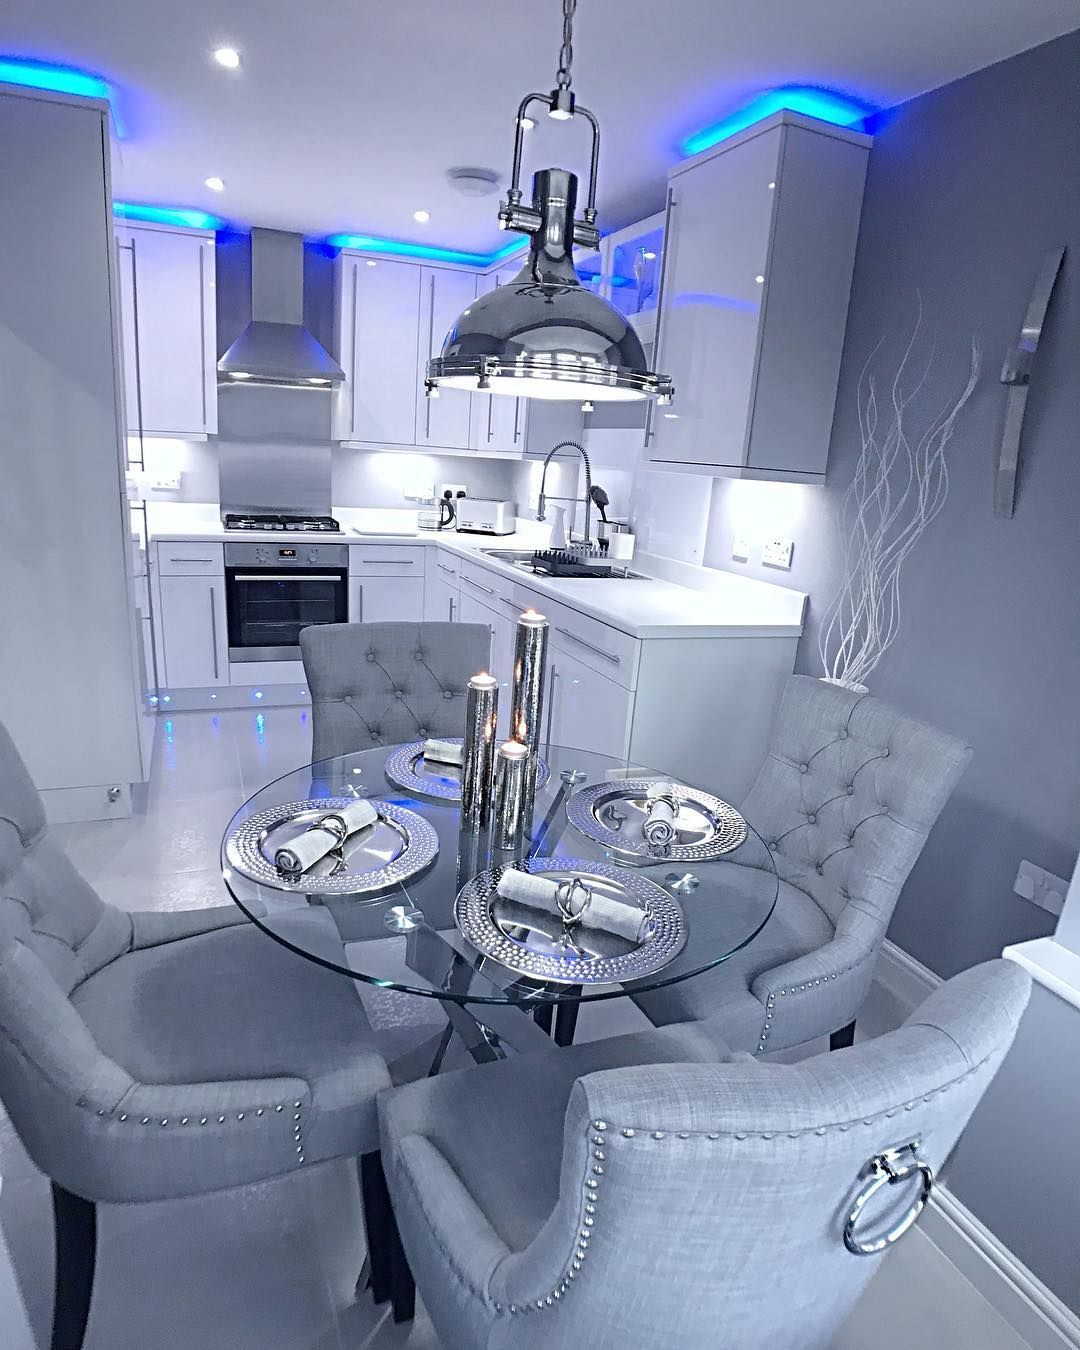 Smallbedroom The Grey Abode On Instagram Kitchen Blue Grey For Days We Dont Have Much Co In 2020 Dream House Decor Living Room Decor Apartment Elegant Dining Room